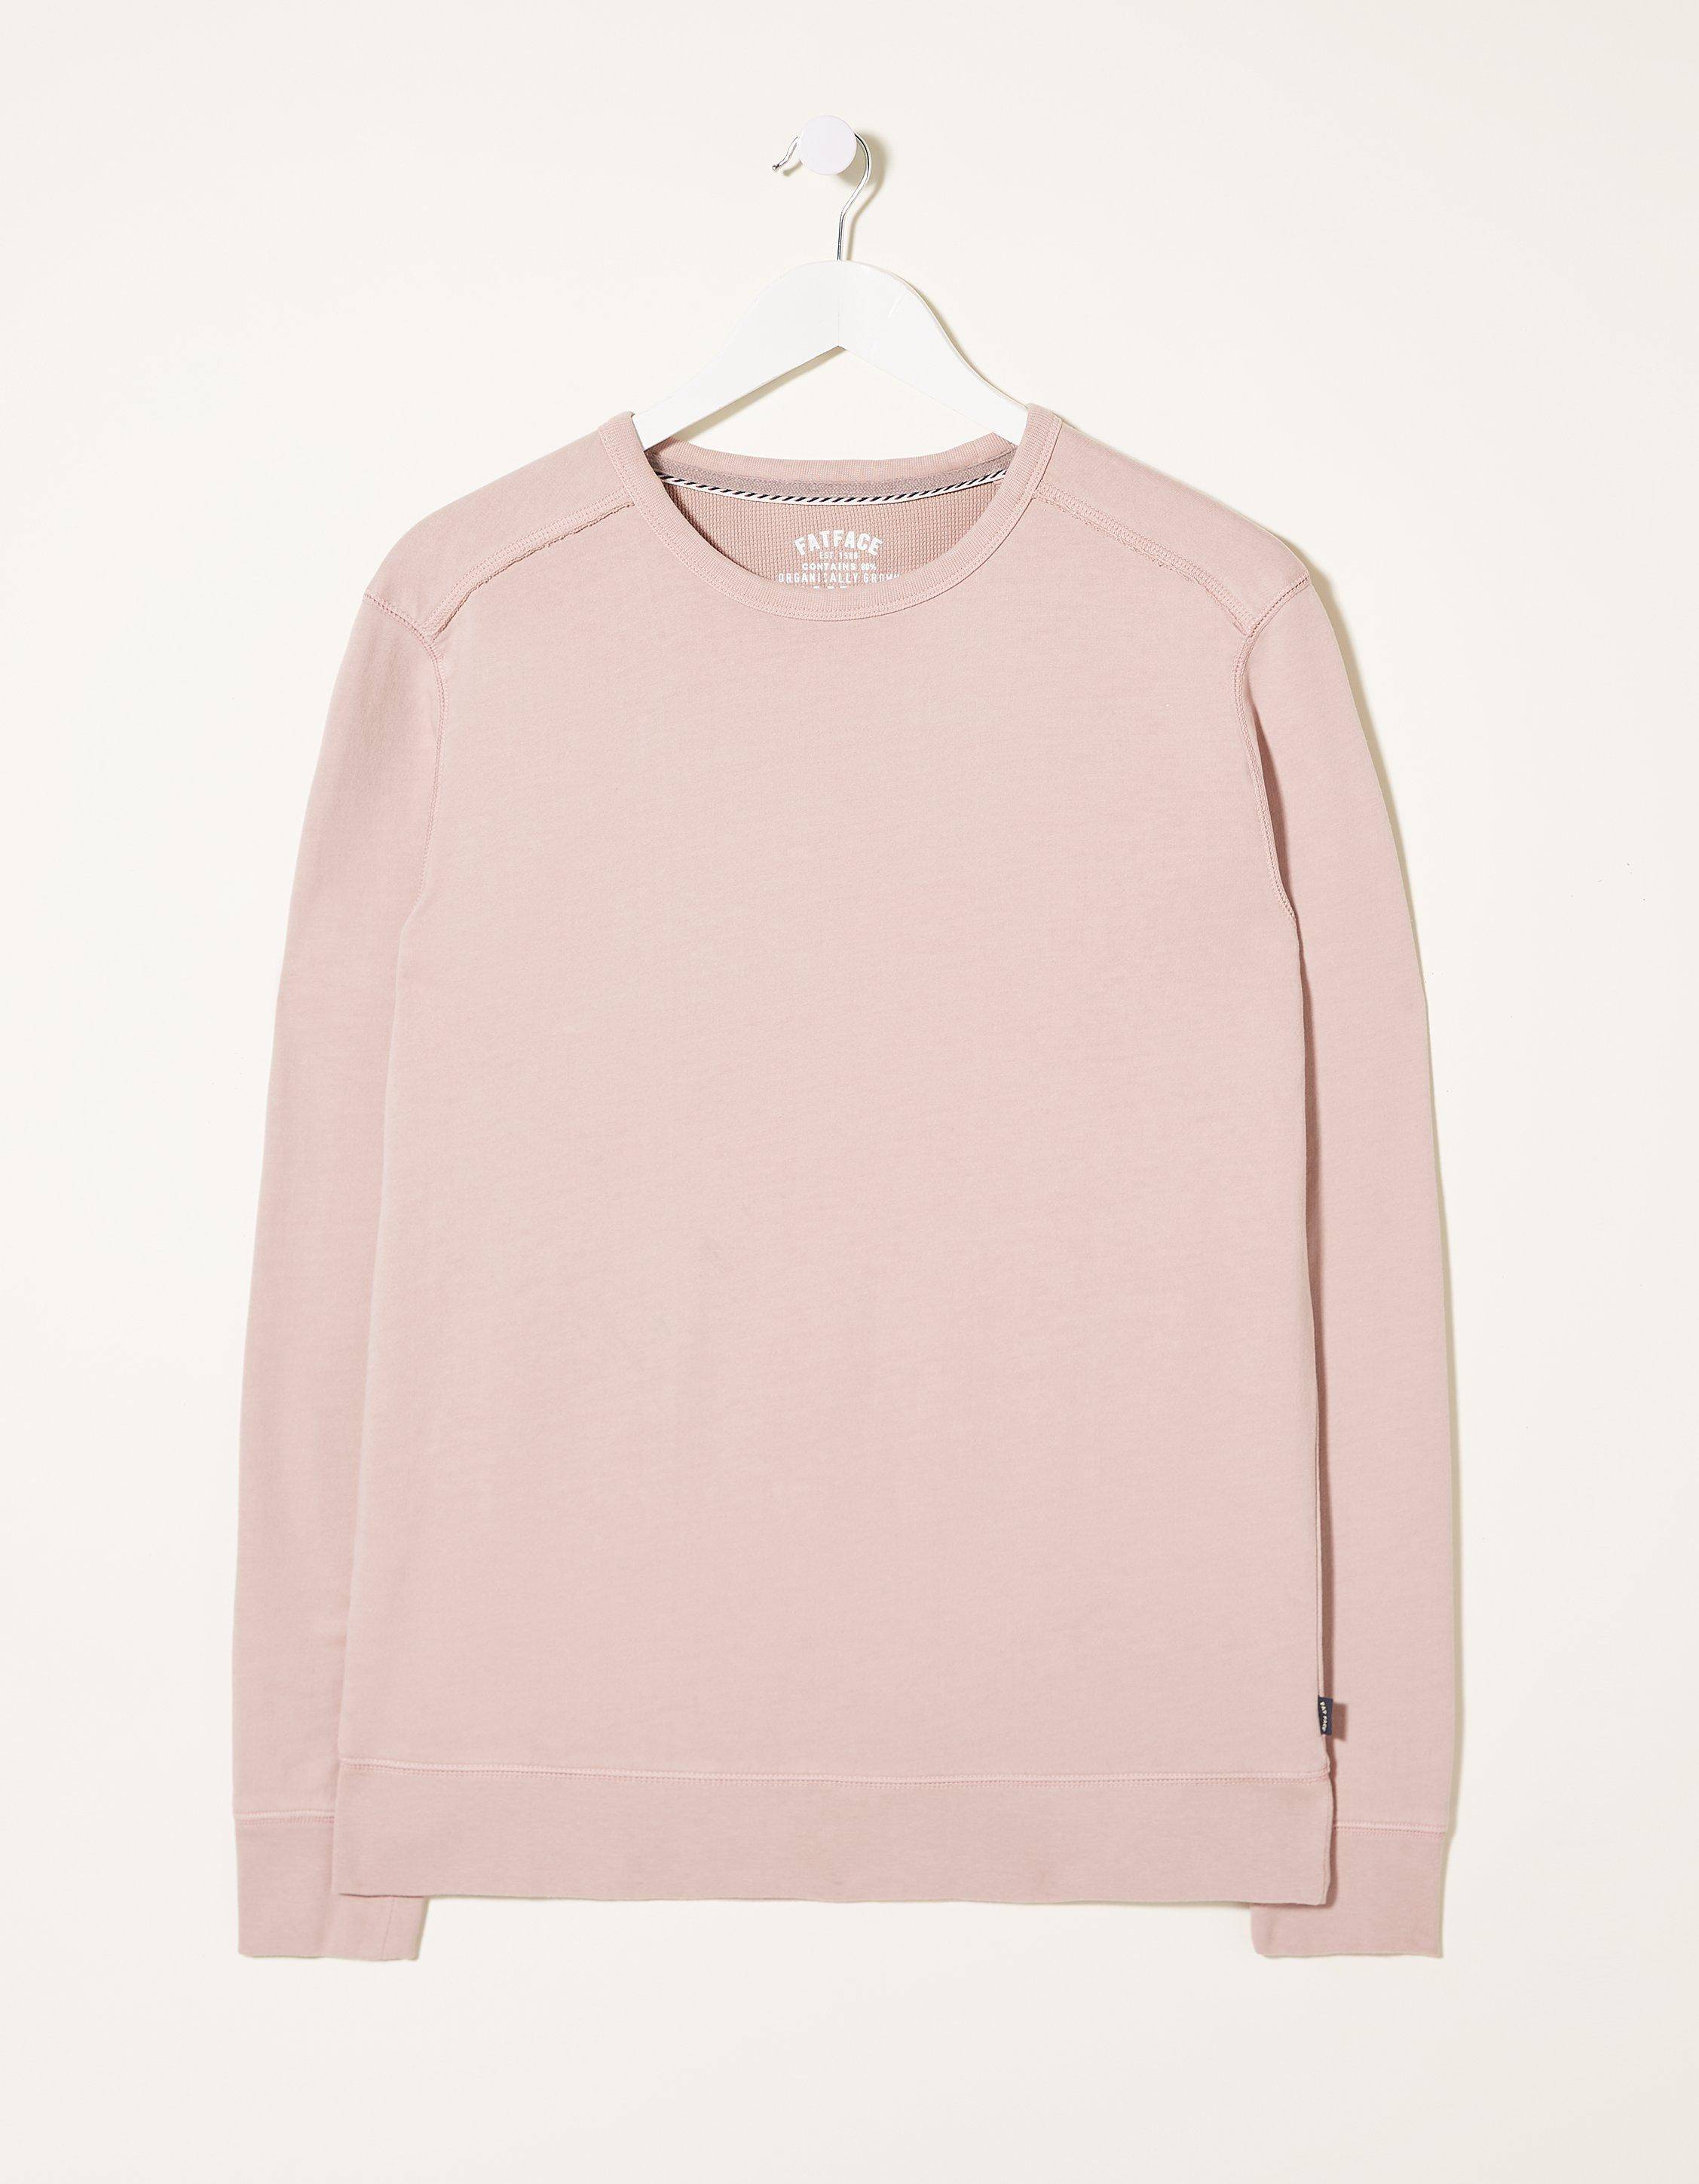 Fat Face Emsworth Crew Neck Sweat  - Size: Extra Large